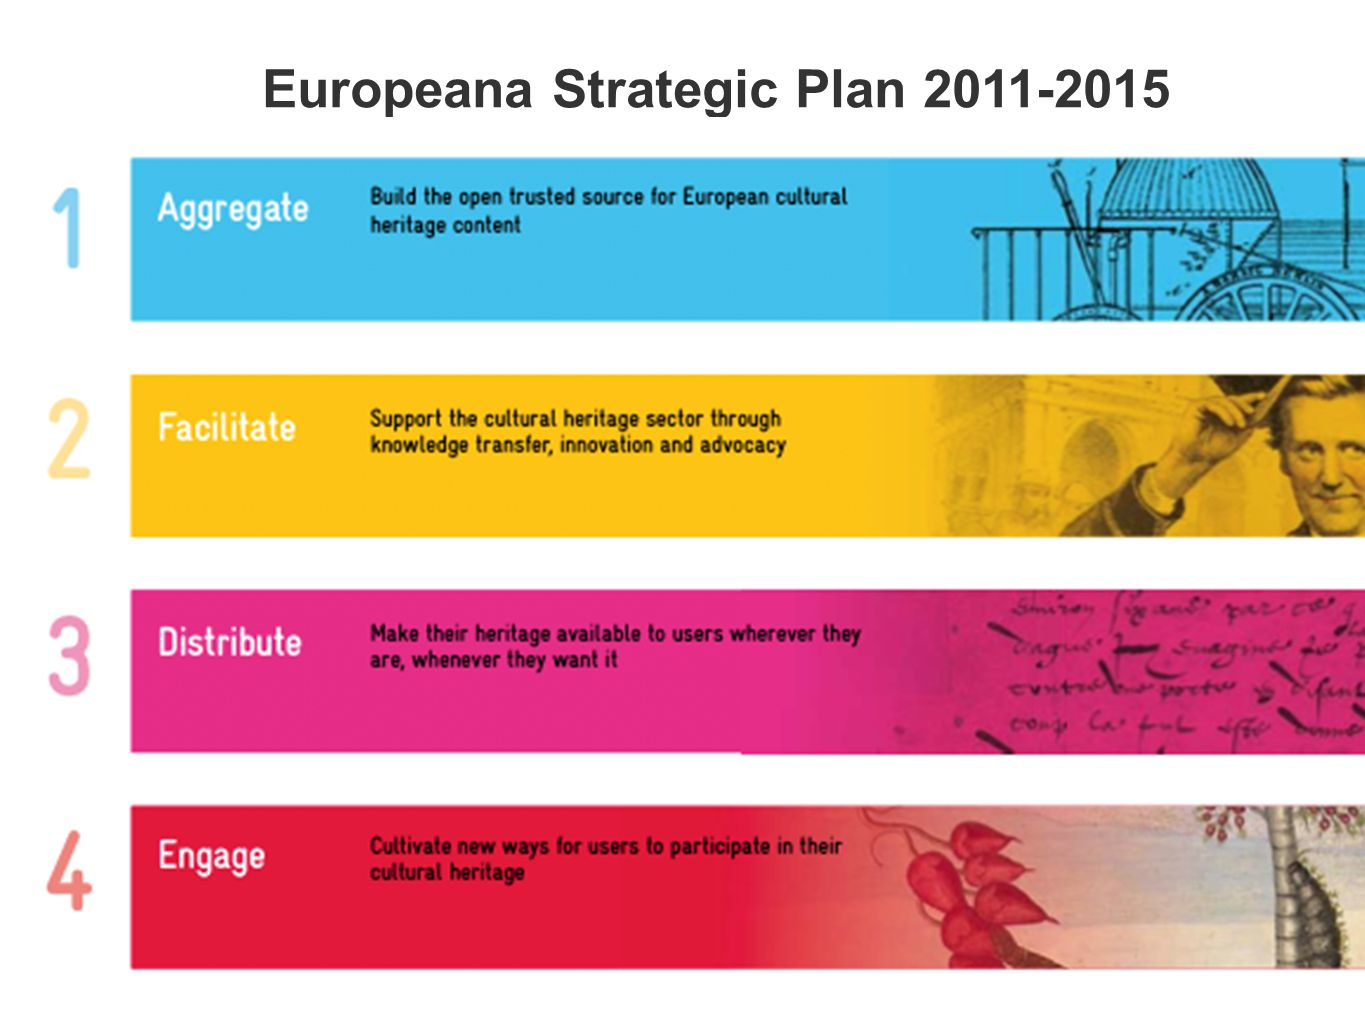 AGGREGATE DISTRIBUTE FACILITATE ENGAGE 4 Europeana Strategic Plan